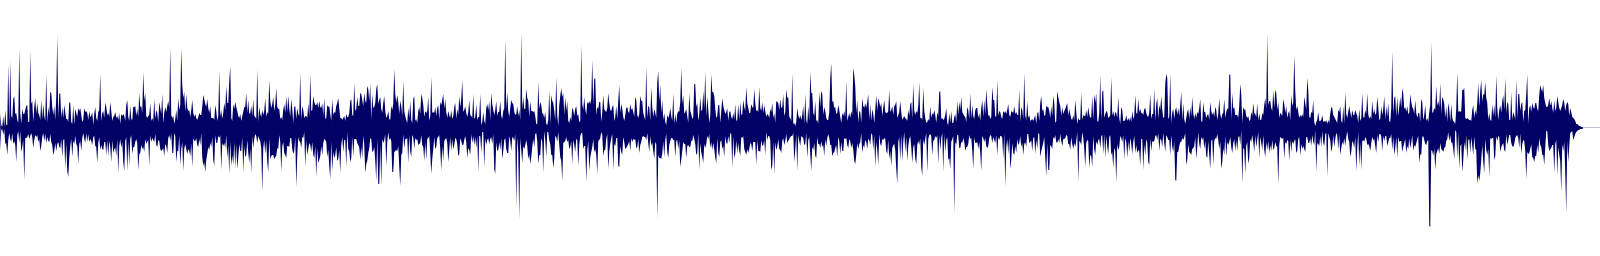 waveform of track #137401